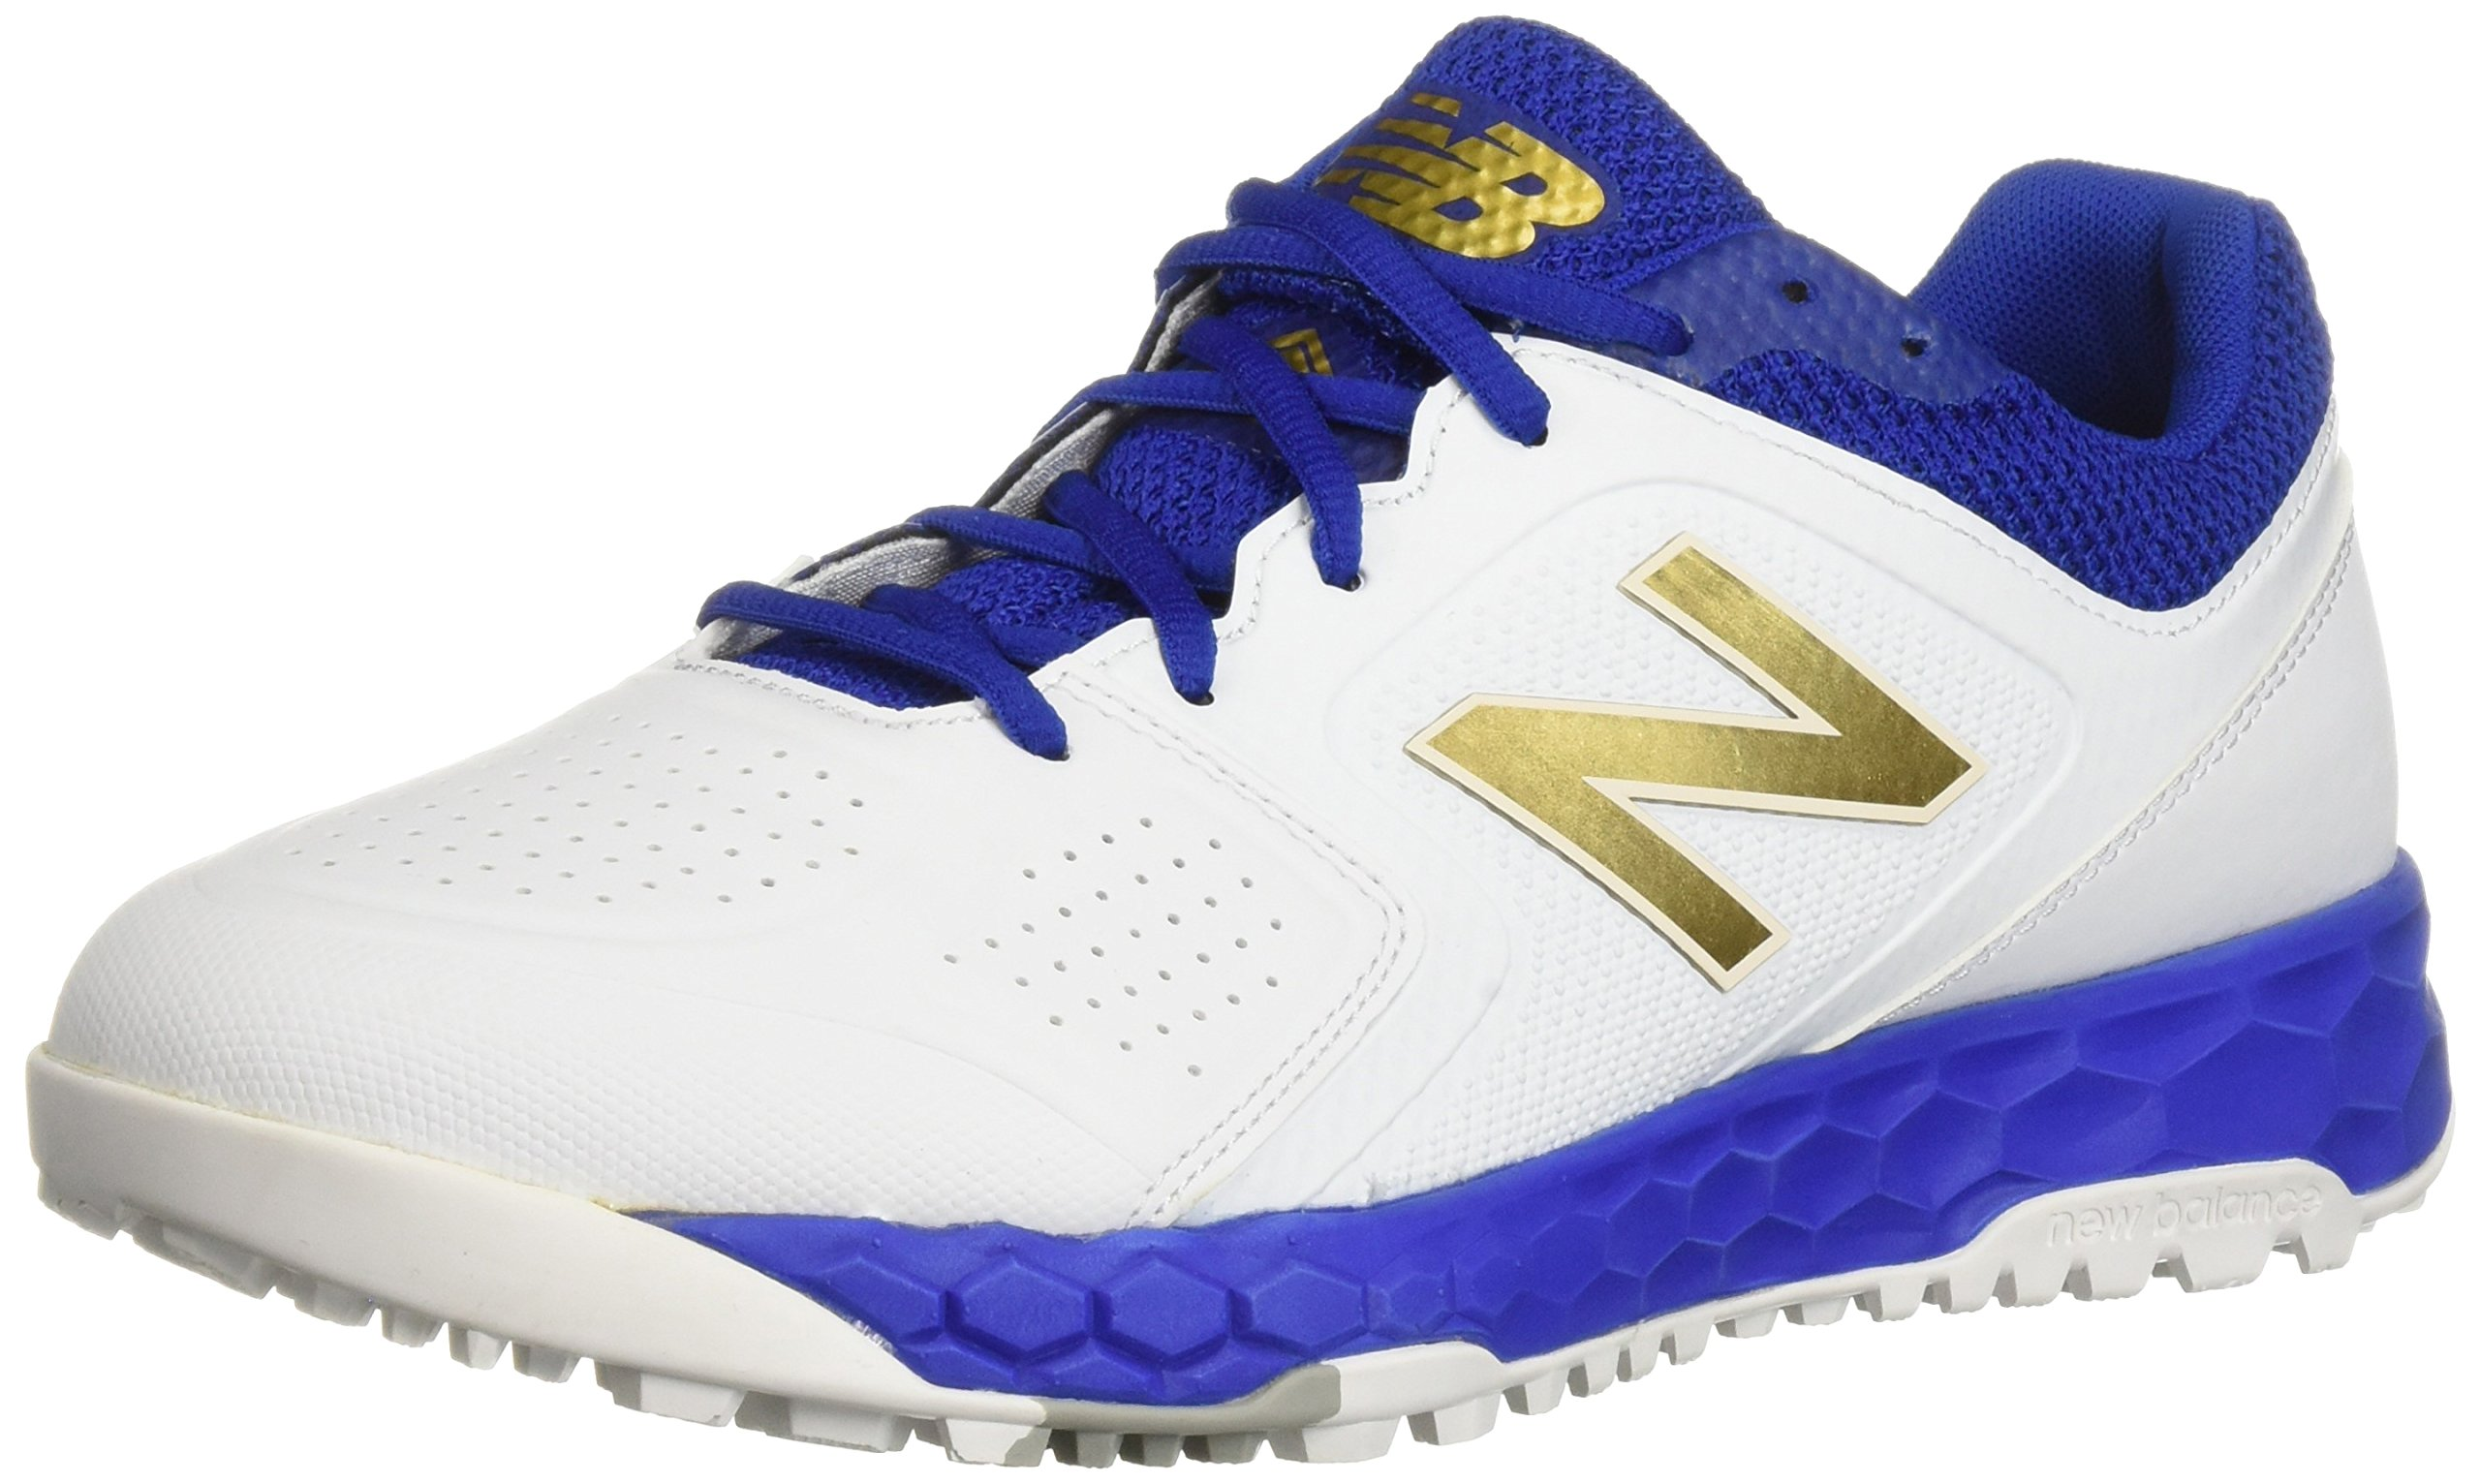 New Balance Women's Velo V1 Turf Softball Shoe, Royal/White, 10.5 B US by New Balance